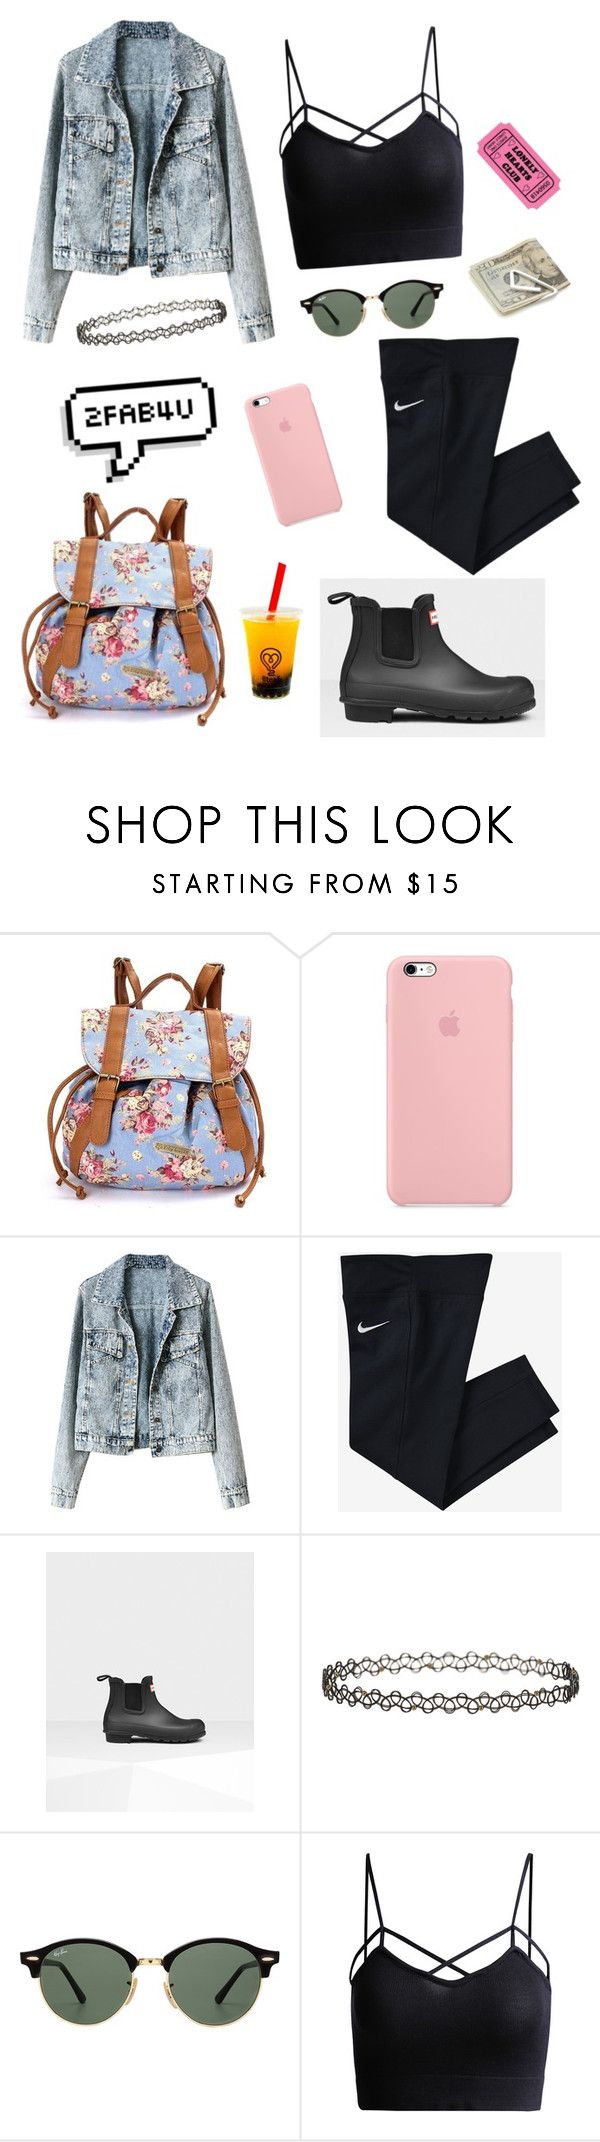 """""""Lonely Hearts Club💔"""" by kylieirwin11 ❤ liked on Polyvore featuring NIKE, Hunter, Miss Selfridge, Ray-Ban and Crate and Barrel"""